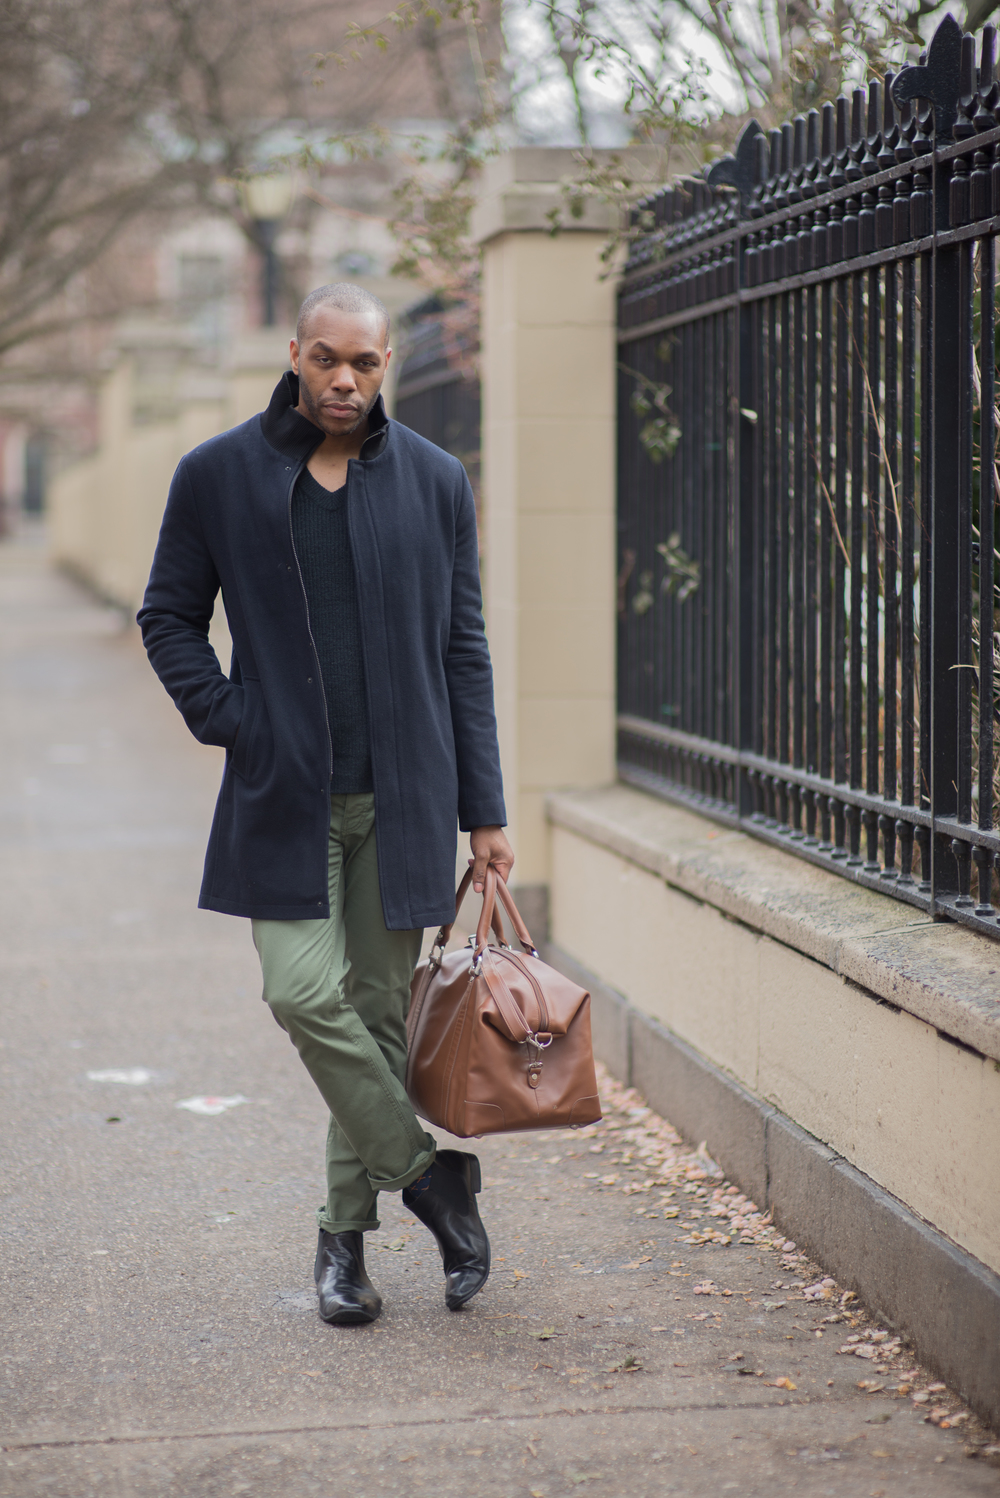 The Bag Makes The Man 2